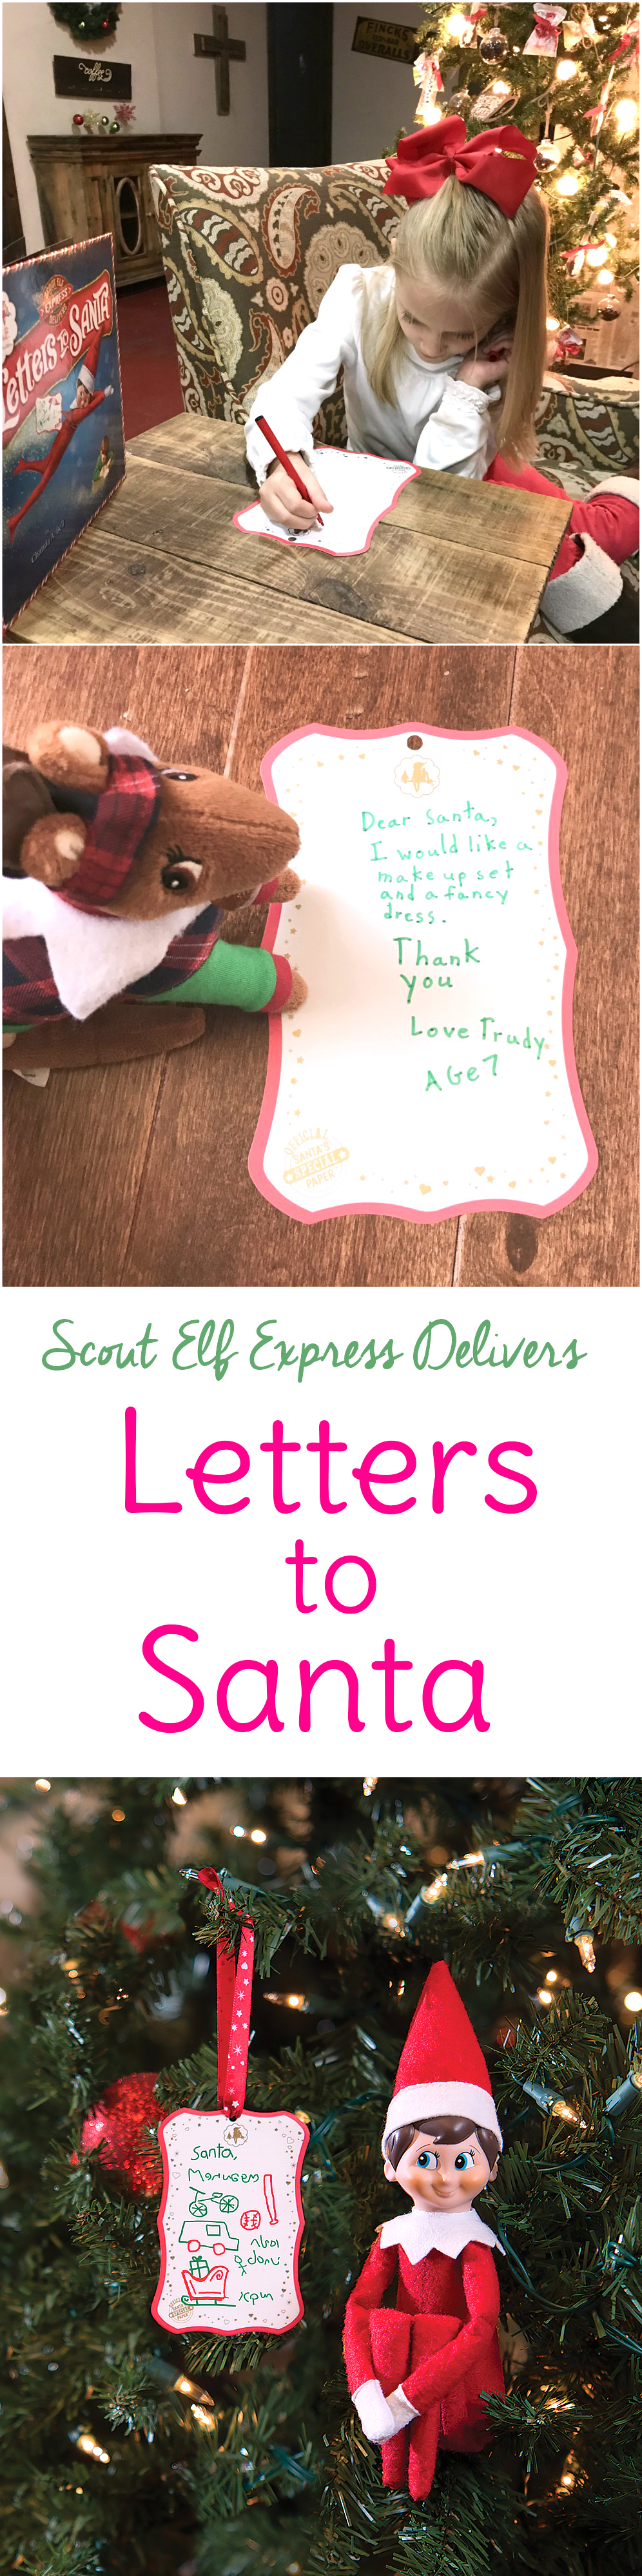 Get letters to Santa to the North Pole the fastest way